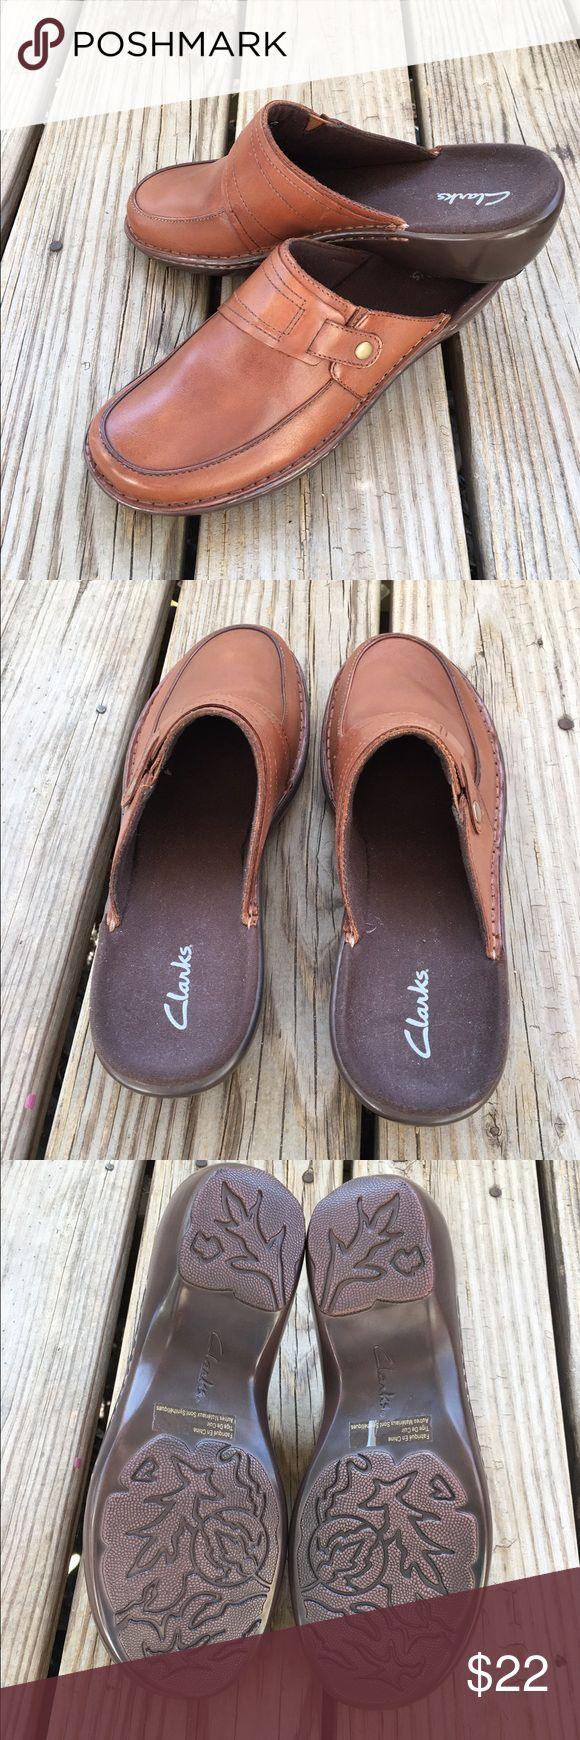 🌼 Clarks Ladies Shoes 🌼 🌼 New Without Tags 🌼 Clarks Shoes Mules & Clogs